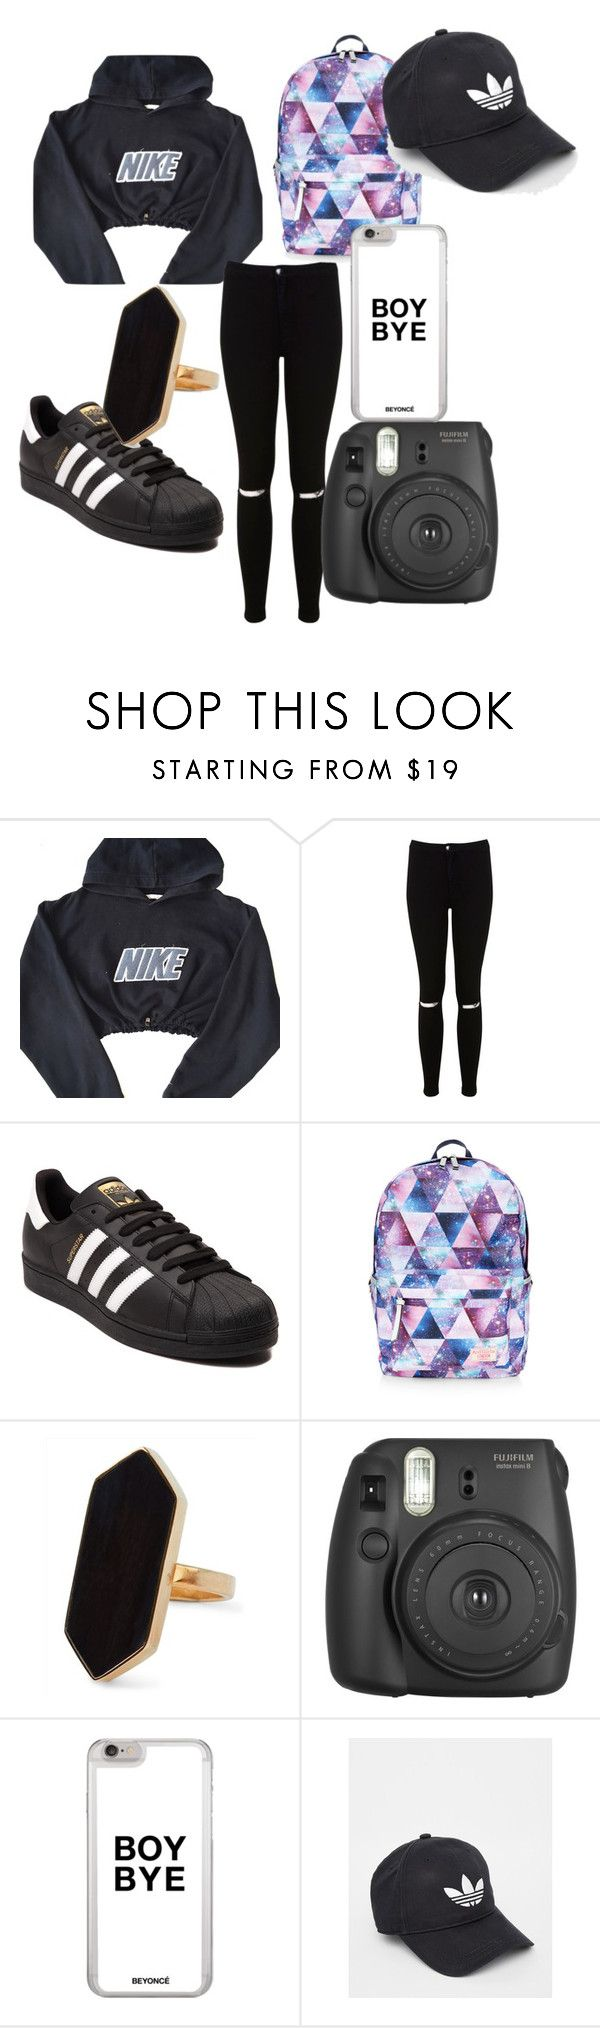 """""""at night"""" by queenshania ❤ liked on Polyvore featuring NIKE, Miss Selfridge, adidas, Accessorize and Jaeger"""